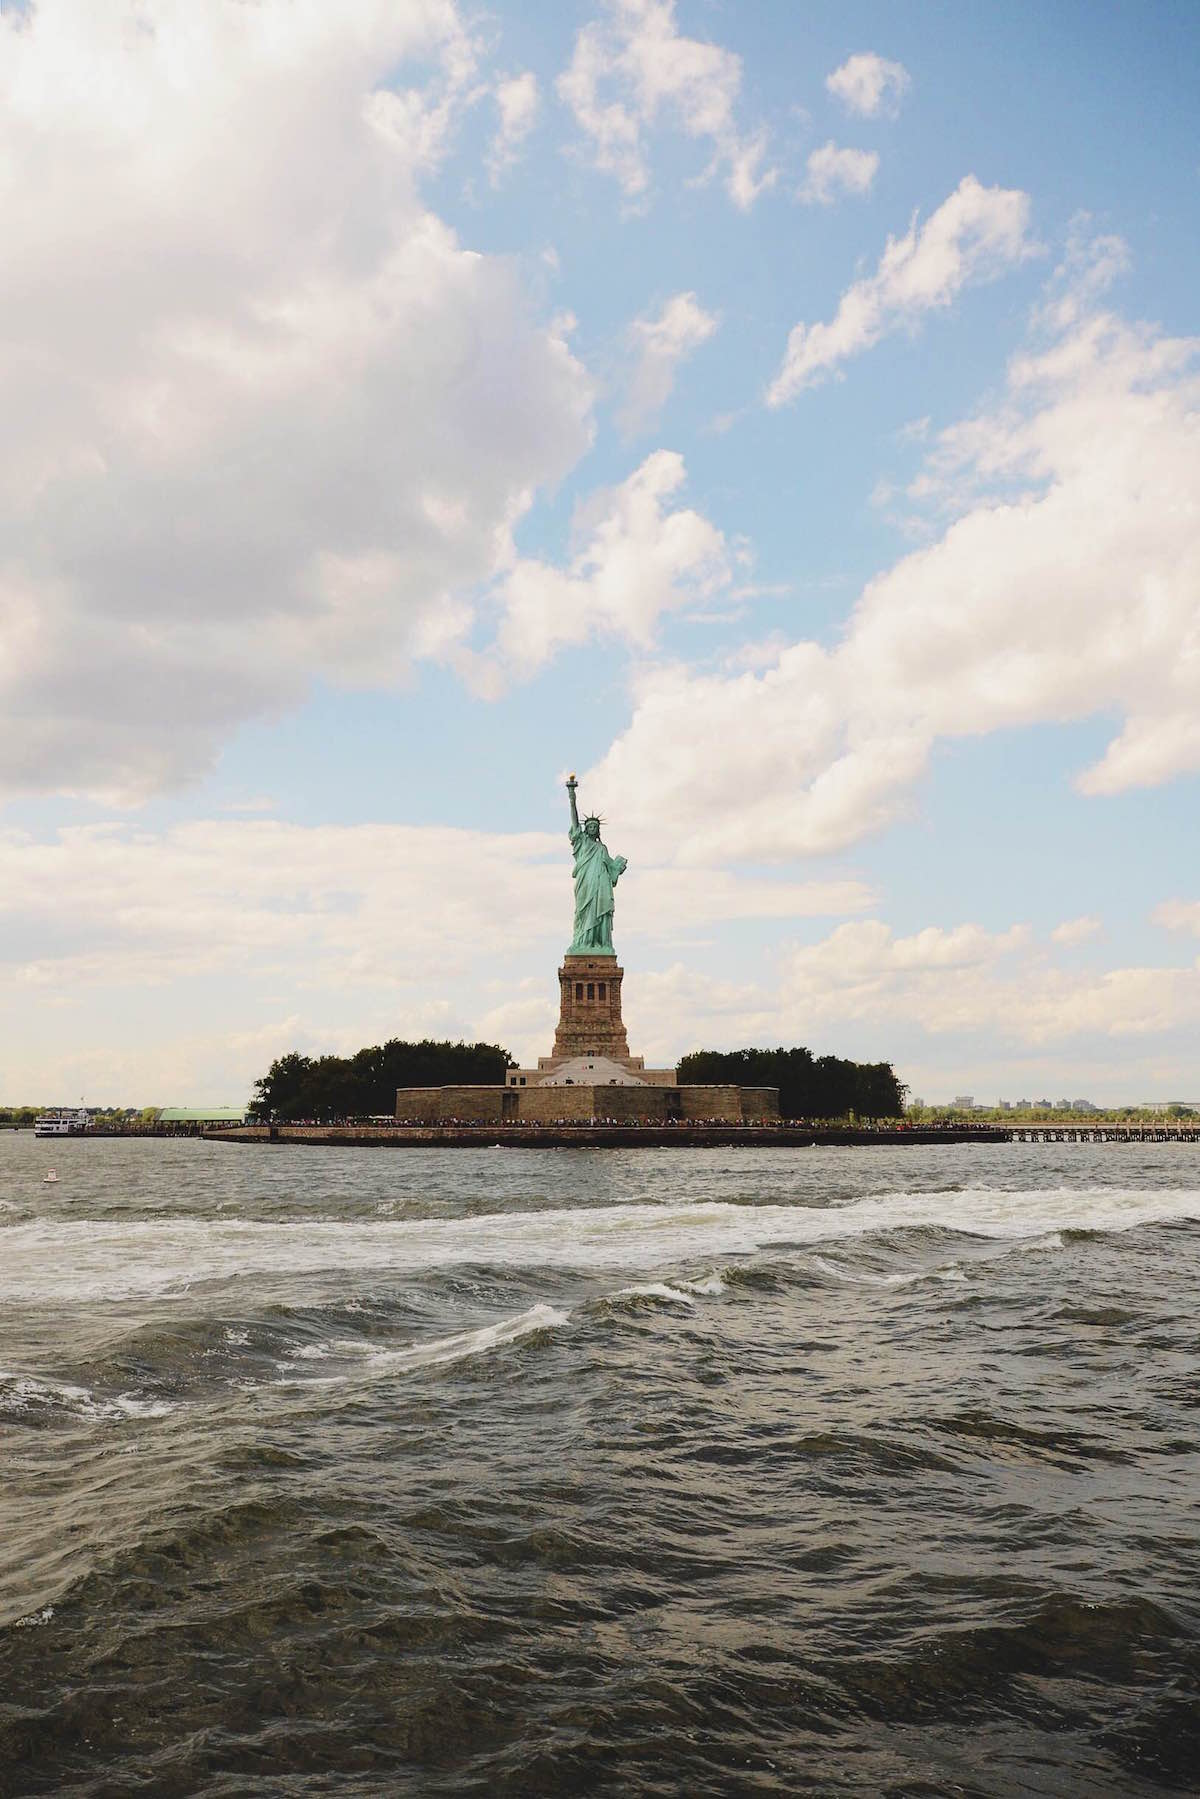 A photo of the Statue of Liberty on Liberty Island – NYC 2014